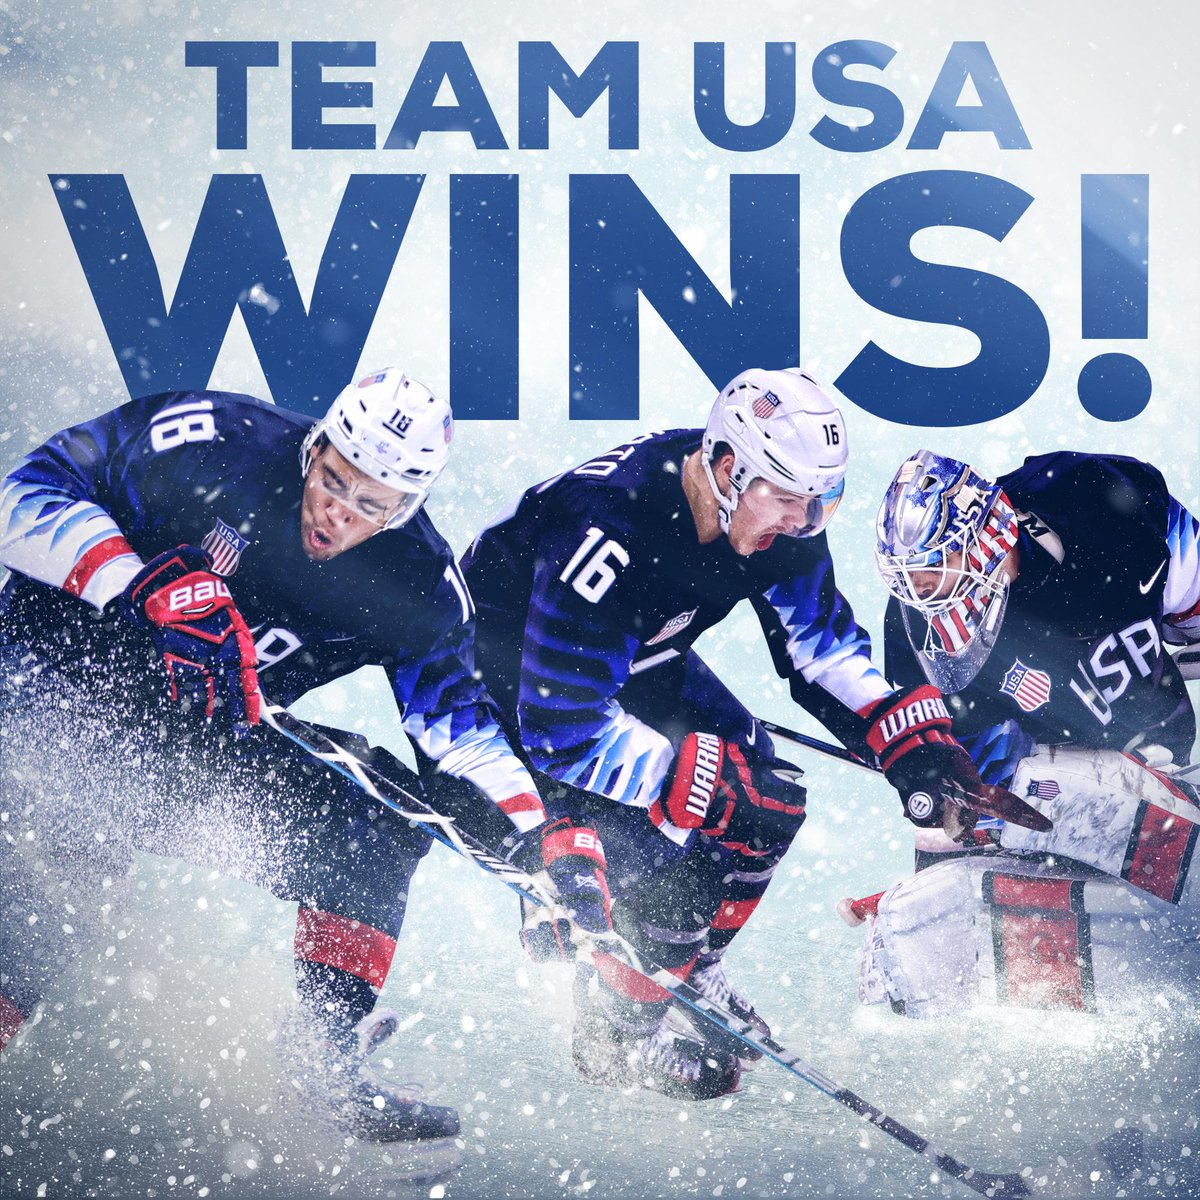 It's on to the quarterfinals! @TeamUSA @usahockey's men send Slovakia home with a 5-1 win. #WinterOlympics